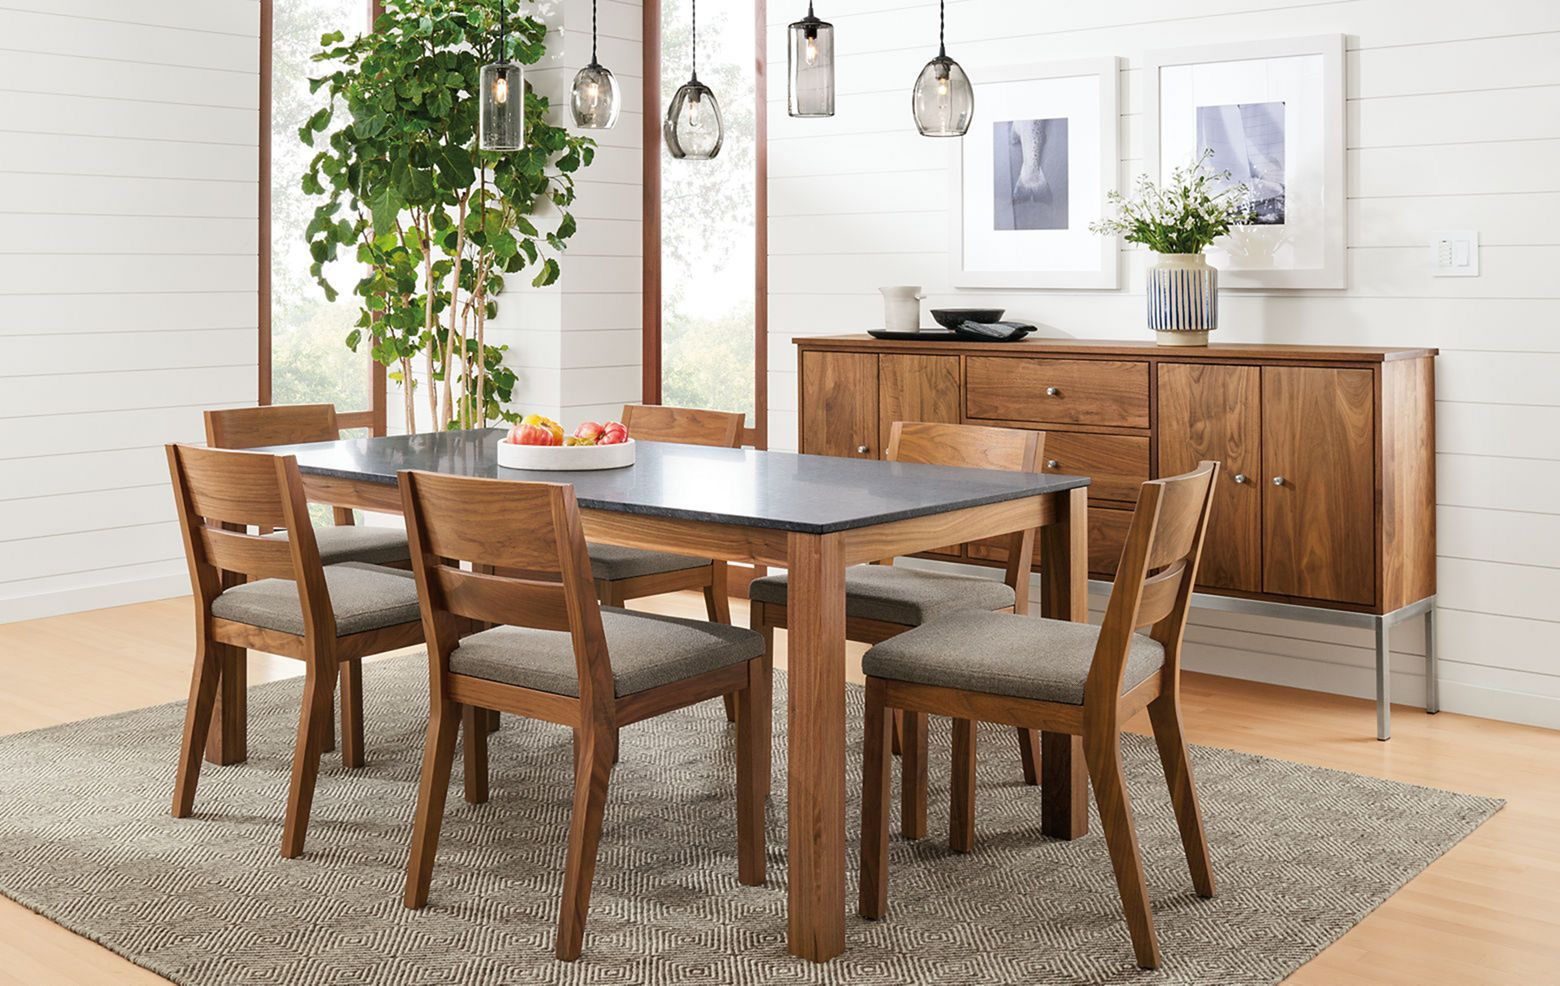 35 Adorable Small Dining Room Ideas For Dinner More Enjoy Dexorate